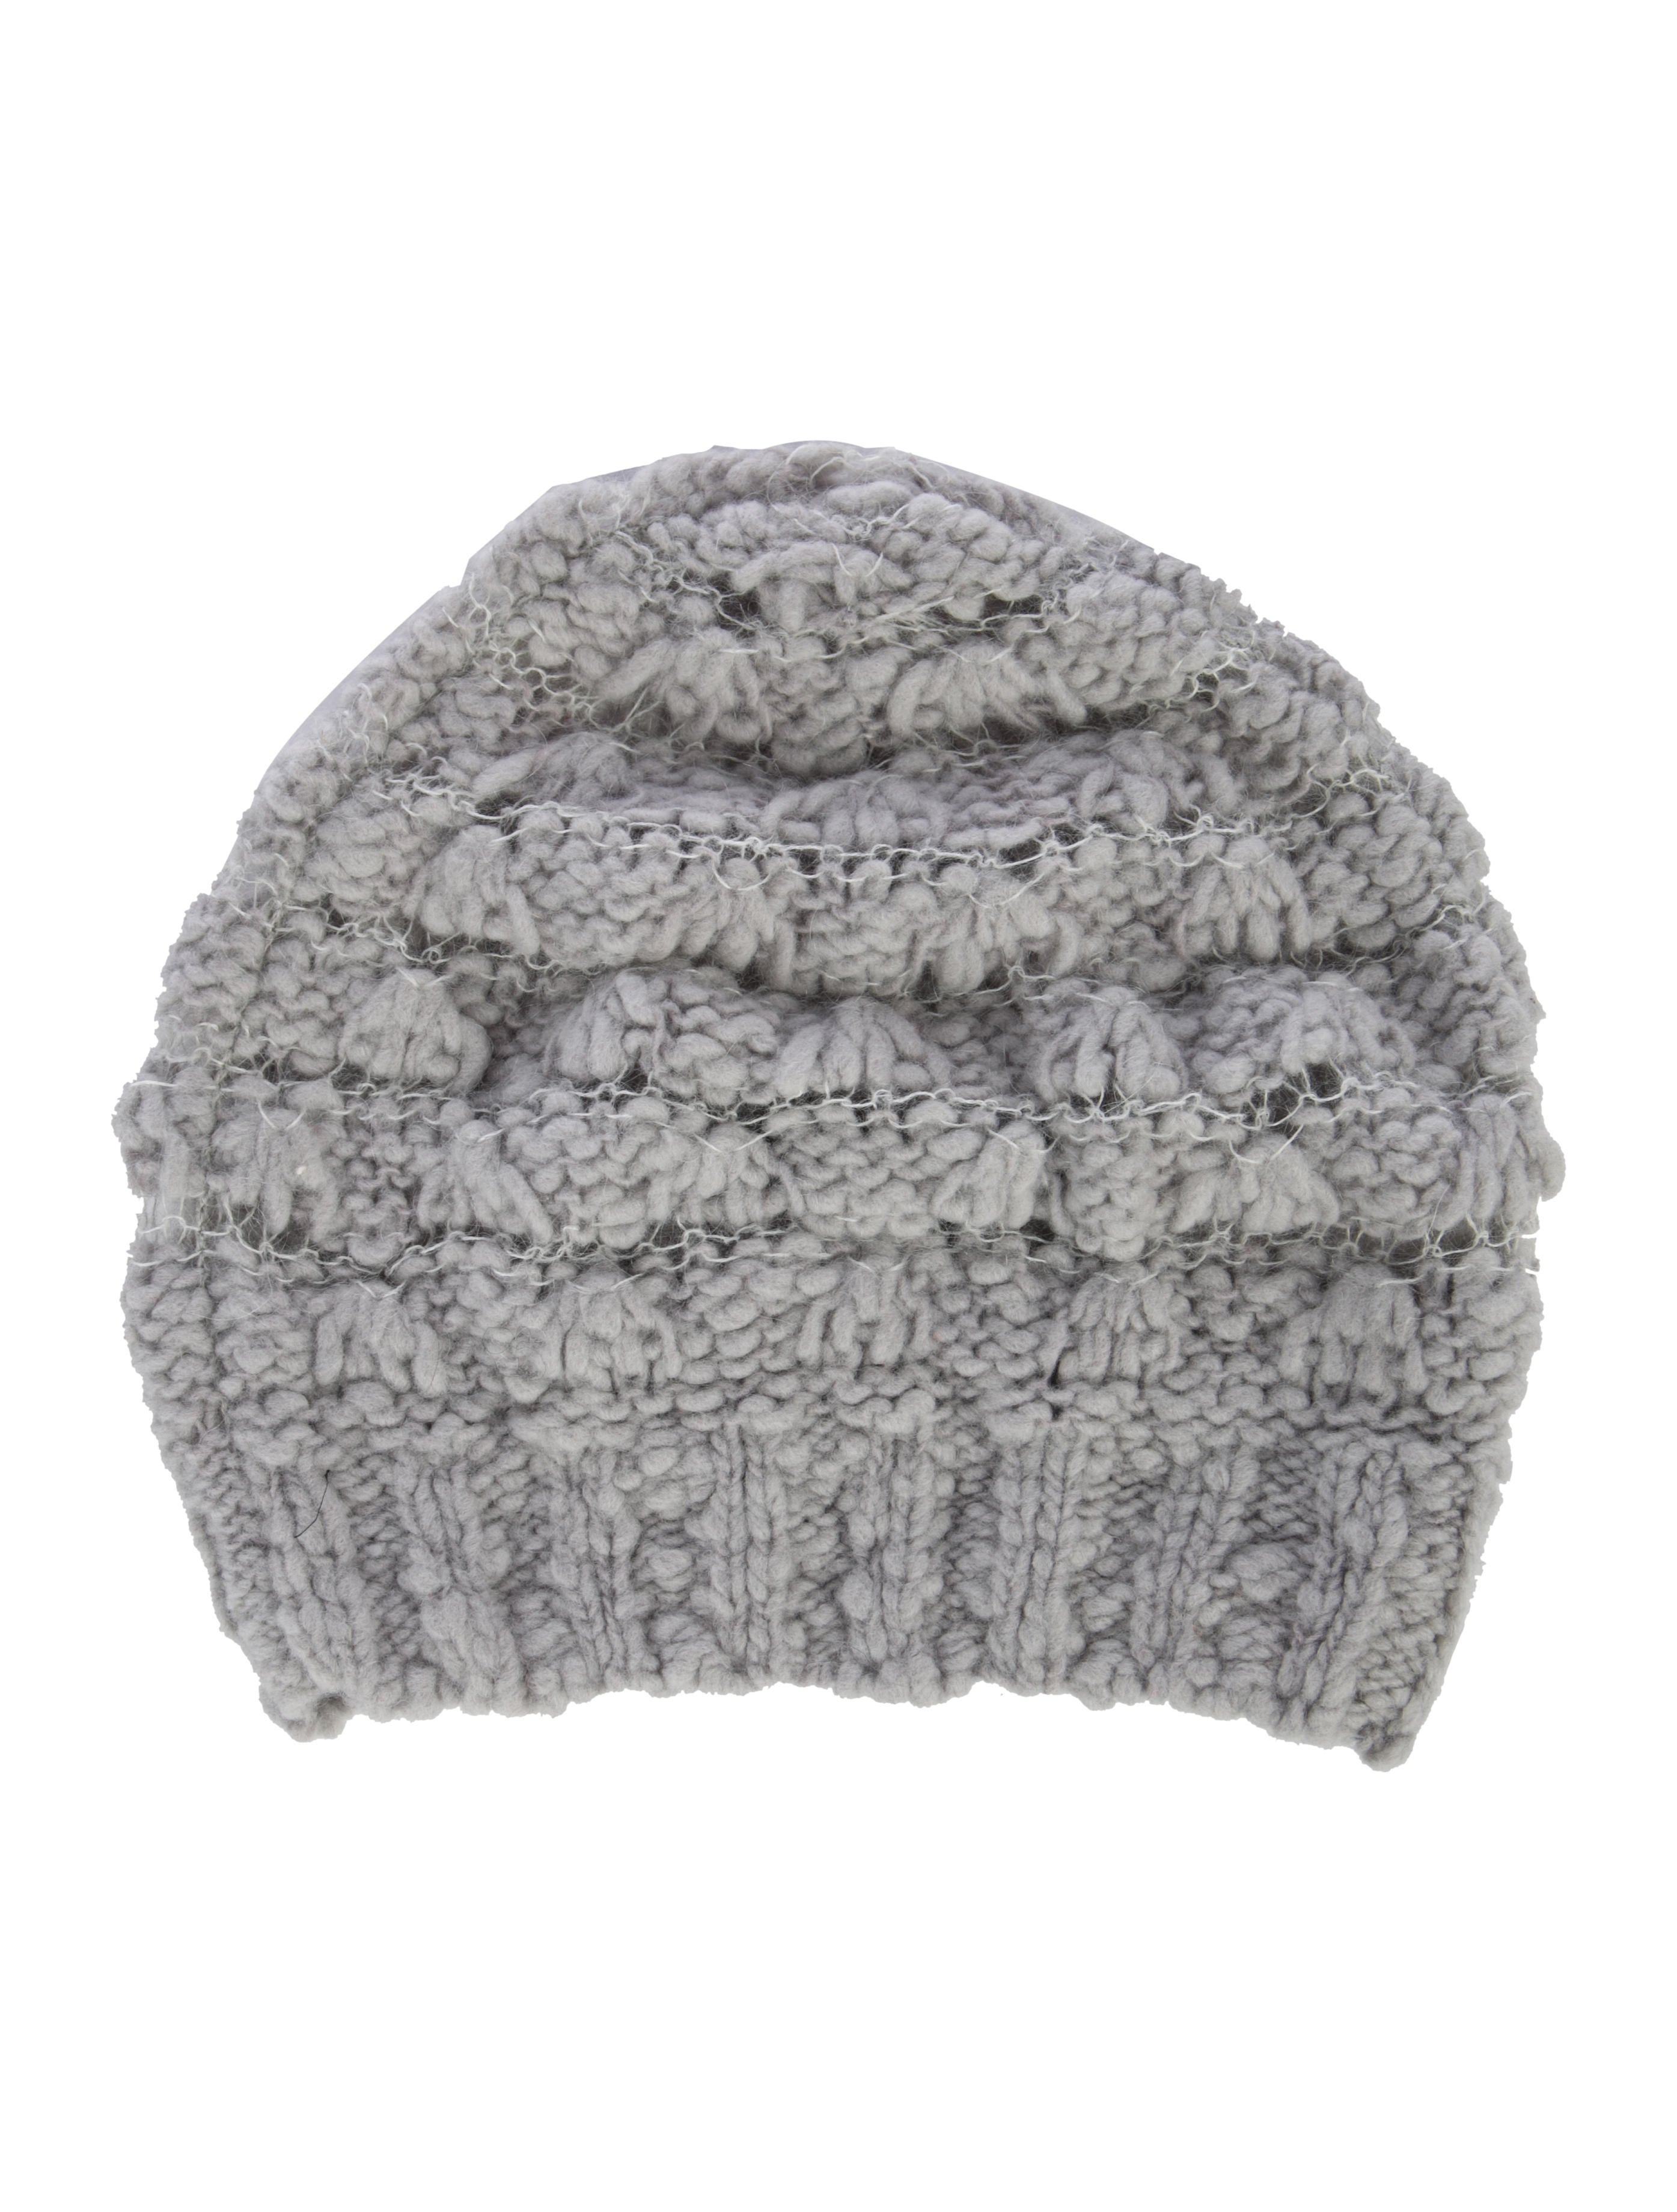 Marc by Marc Jacobs Wool Open Knit Beanie - Accessories - WMA29090 ... 1fb0b67b87a